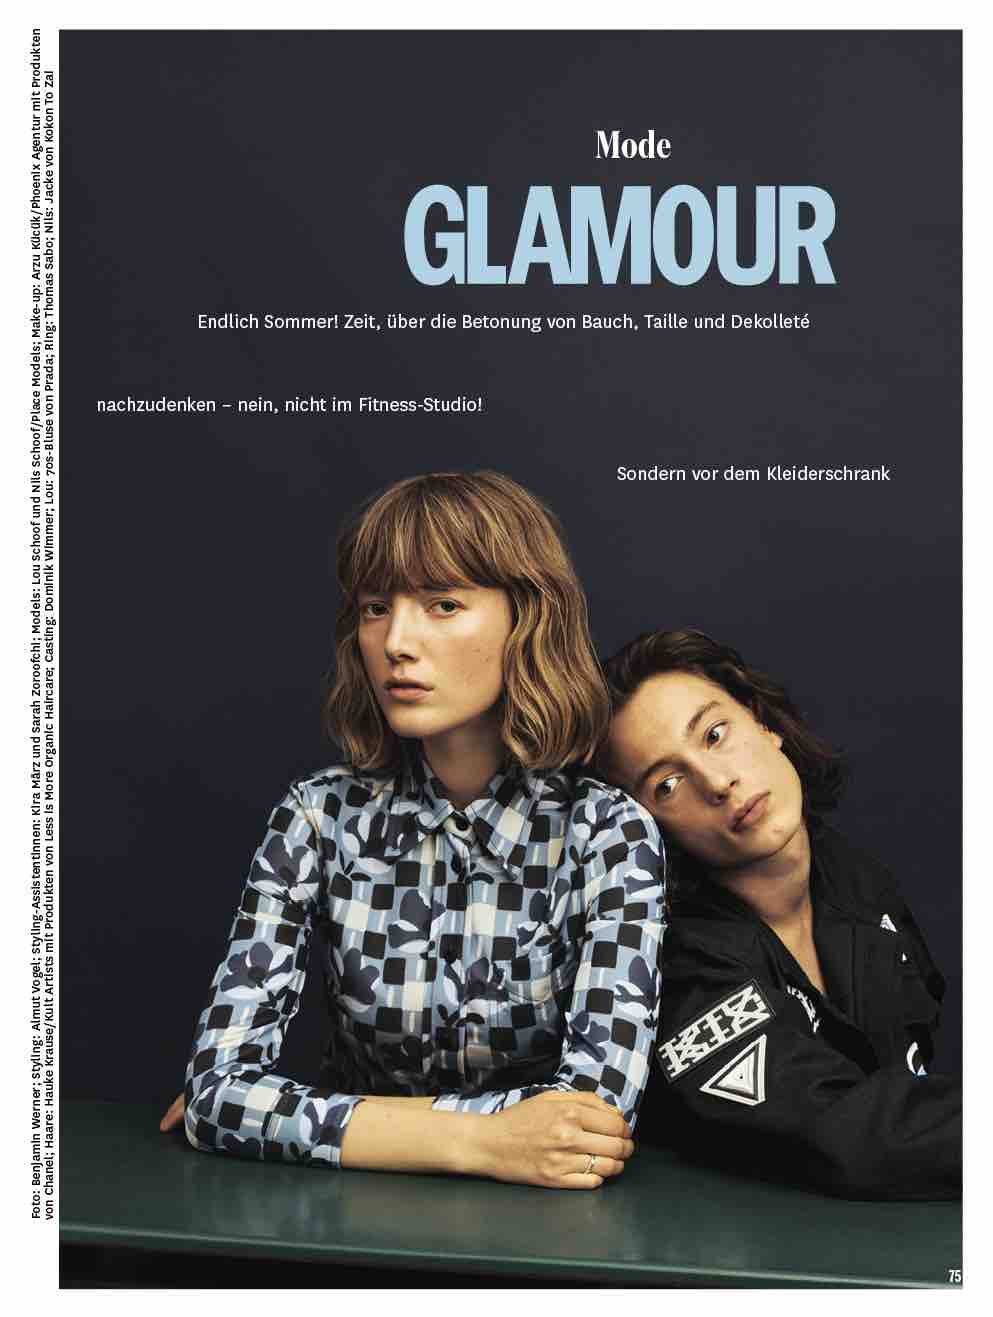 Glamour Germany - June.17 (Mode Aufm)